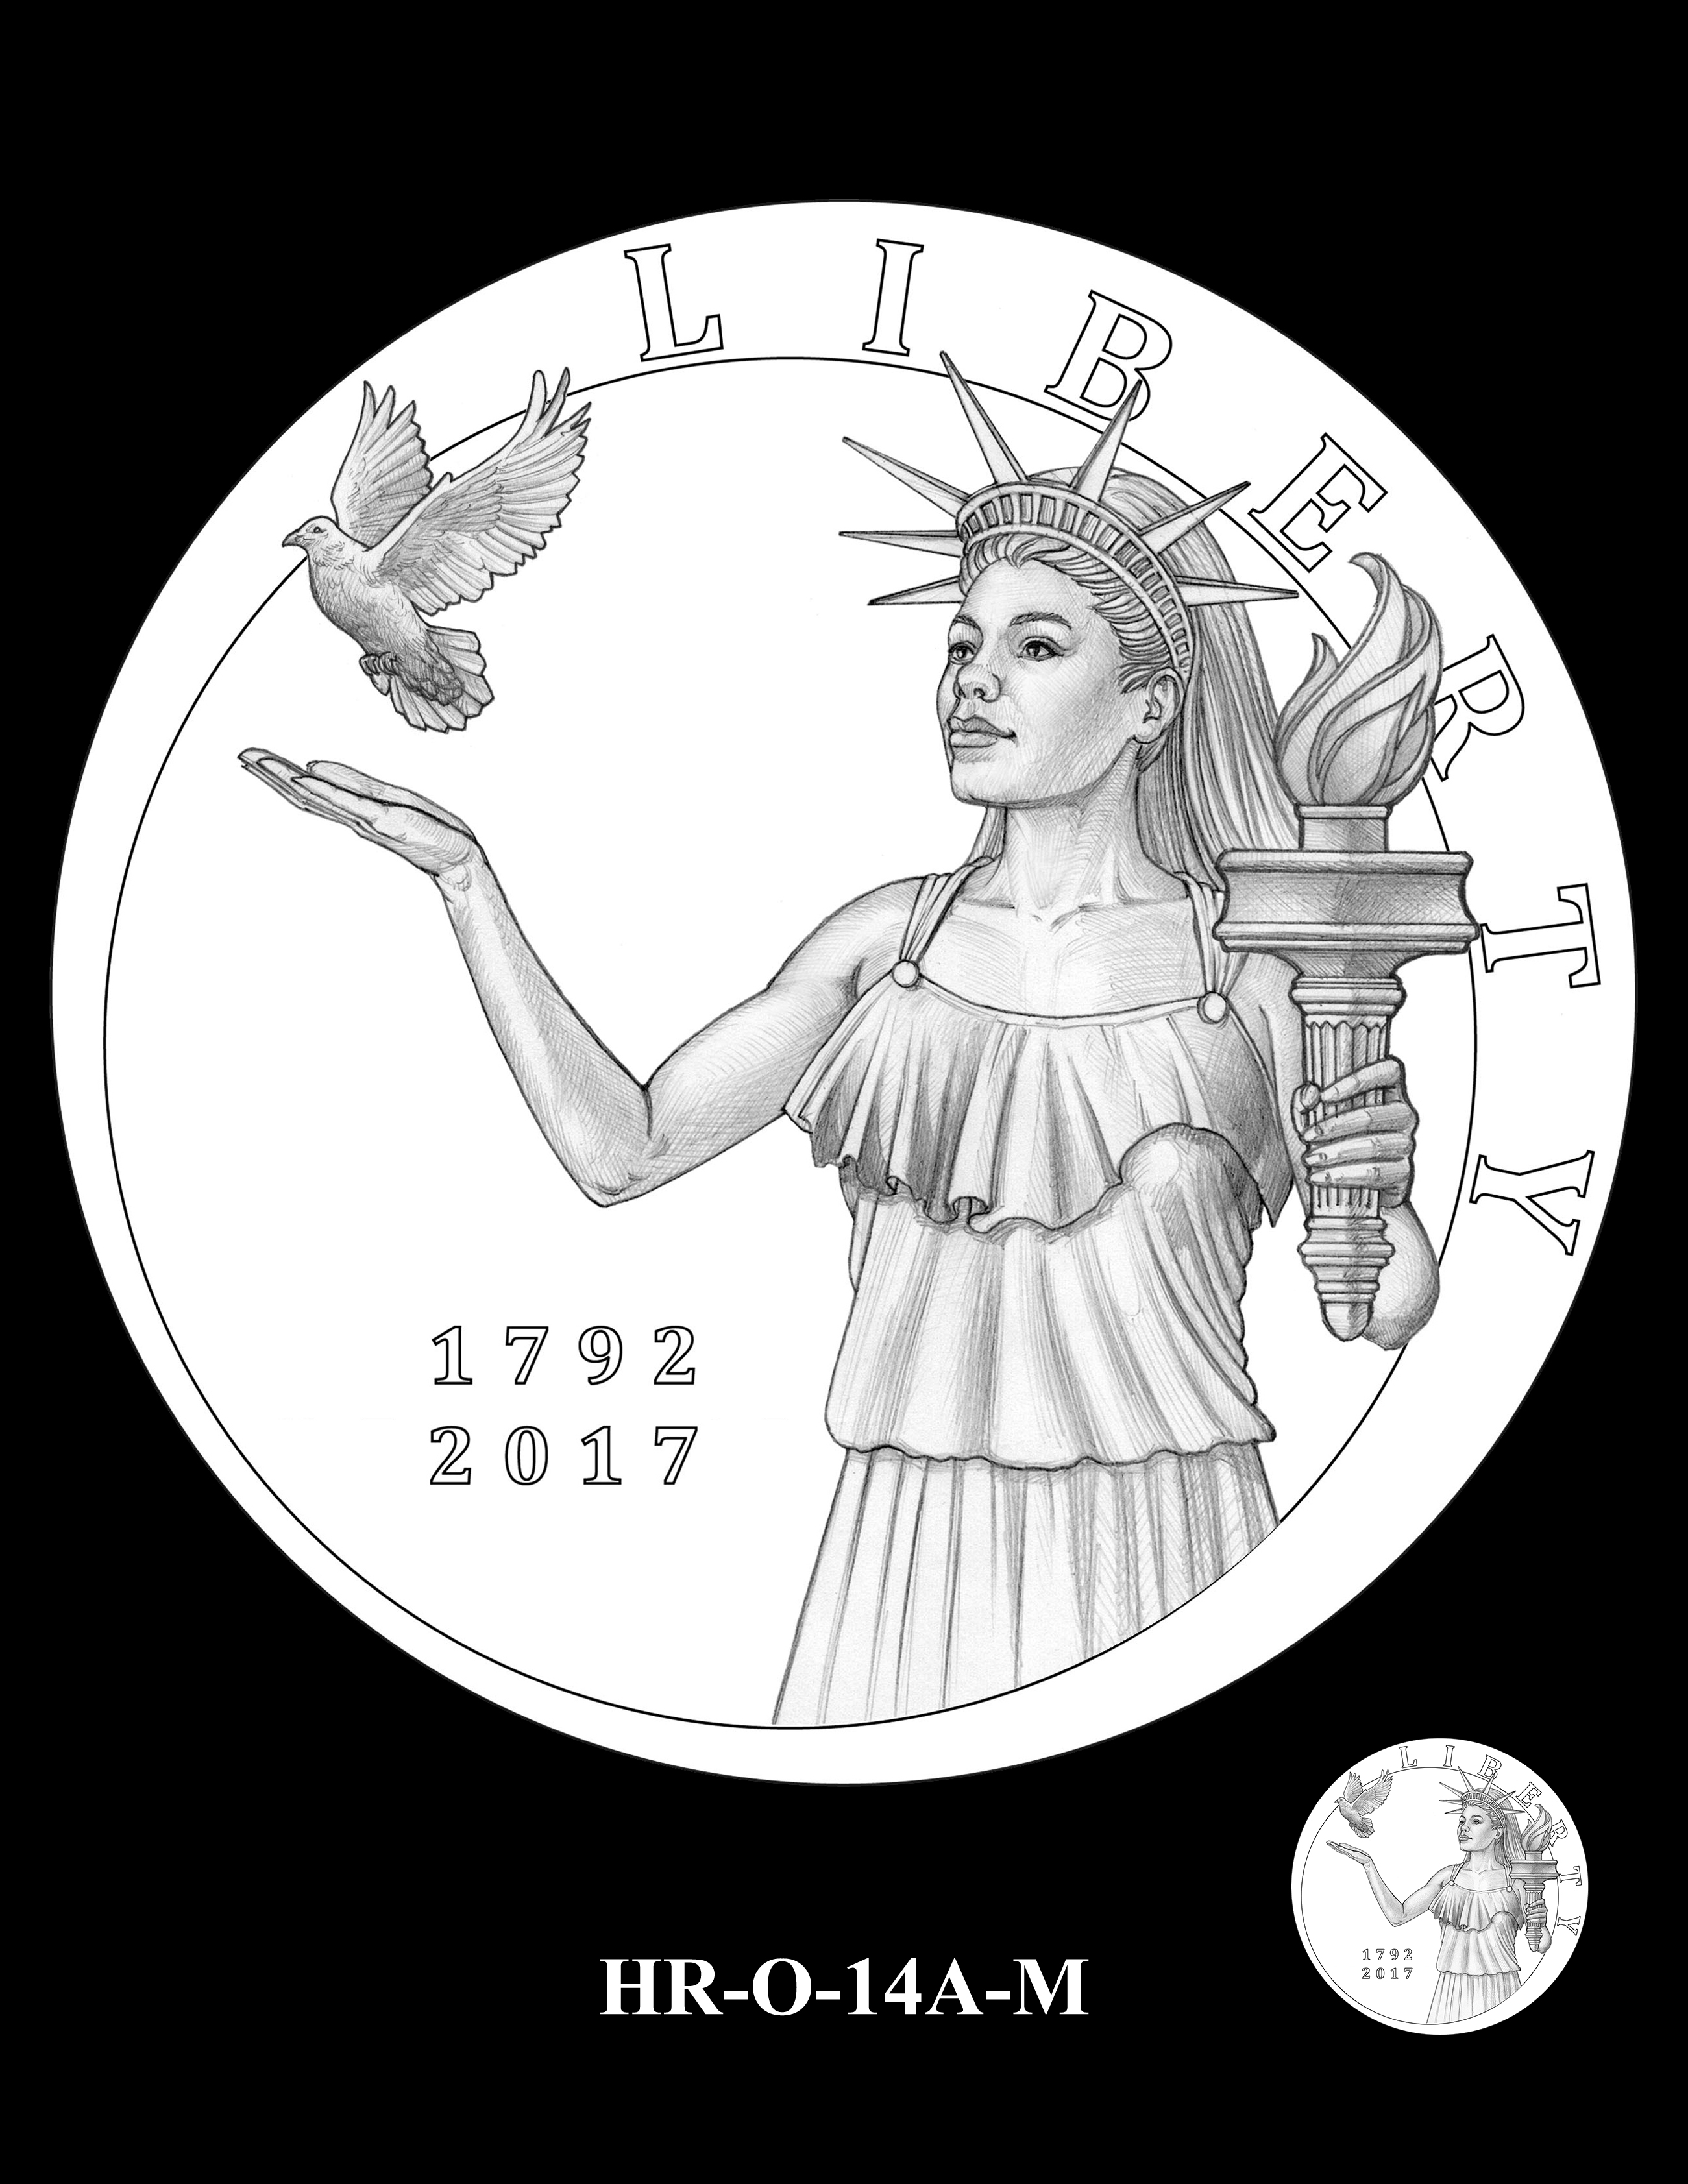 HR-O-14A-M - 2017 American Liberty High Relief Gold Coin and Silver Medal Program